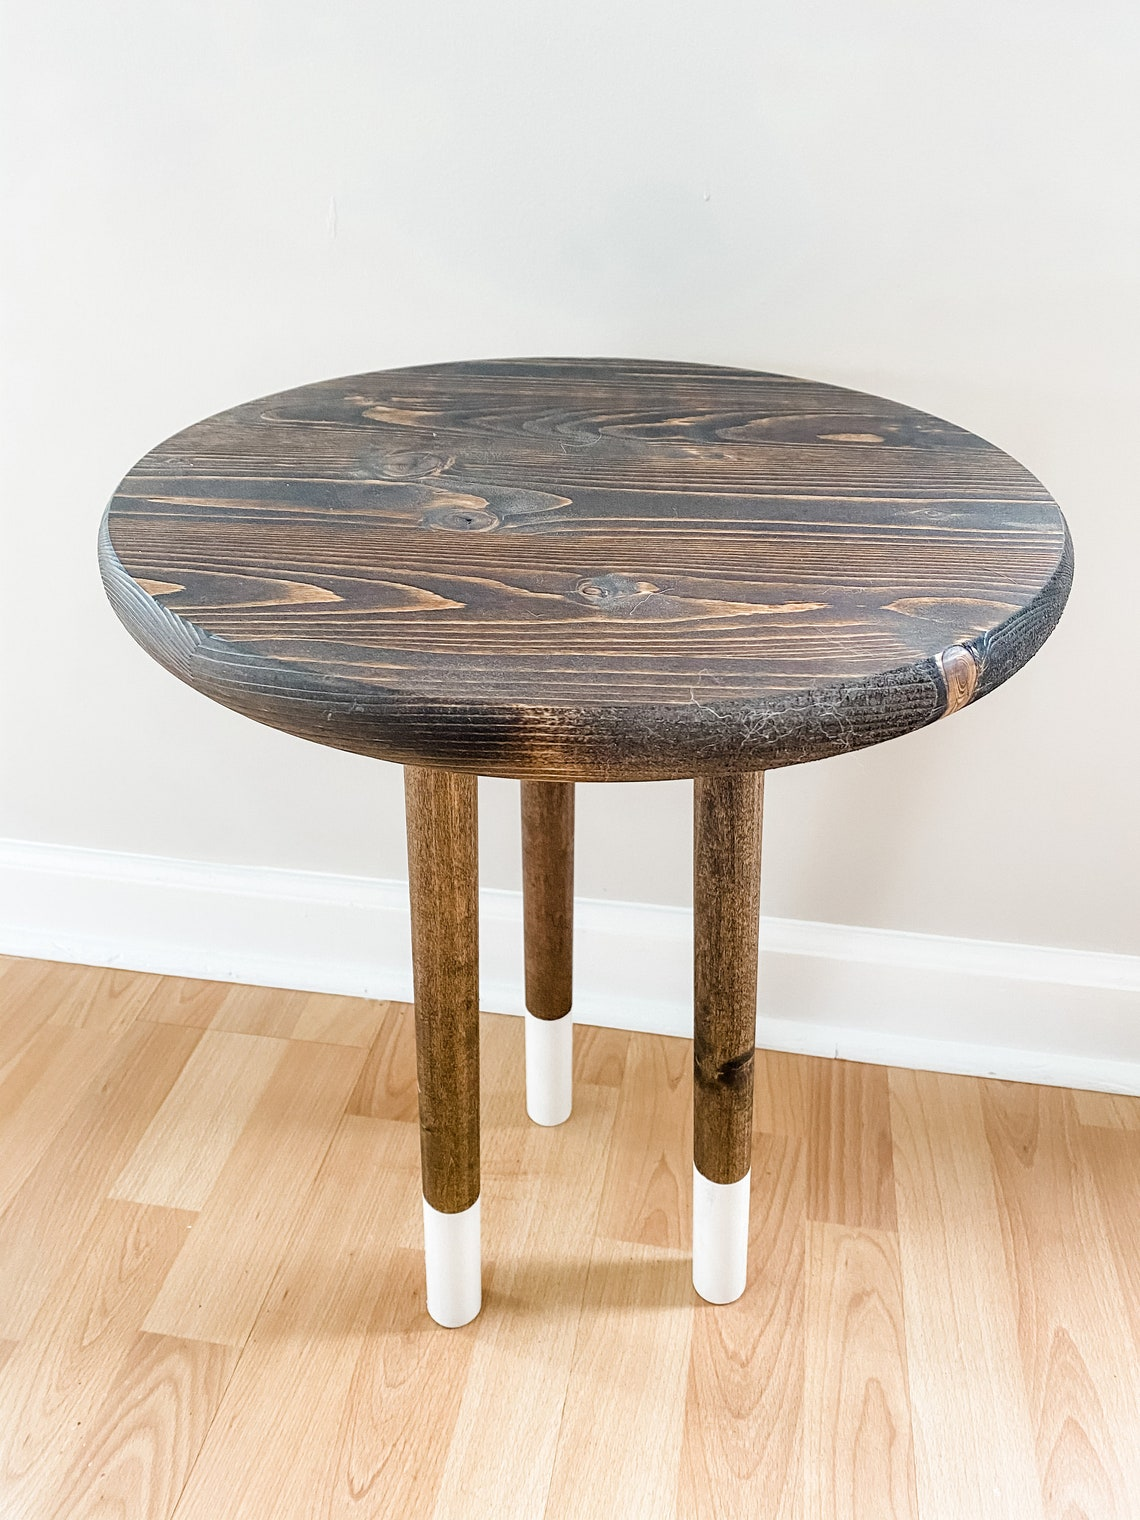 Handcrafted Round Wooden End Table